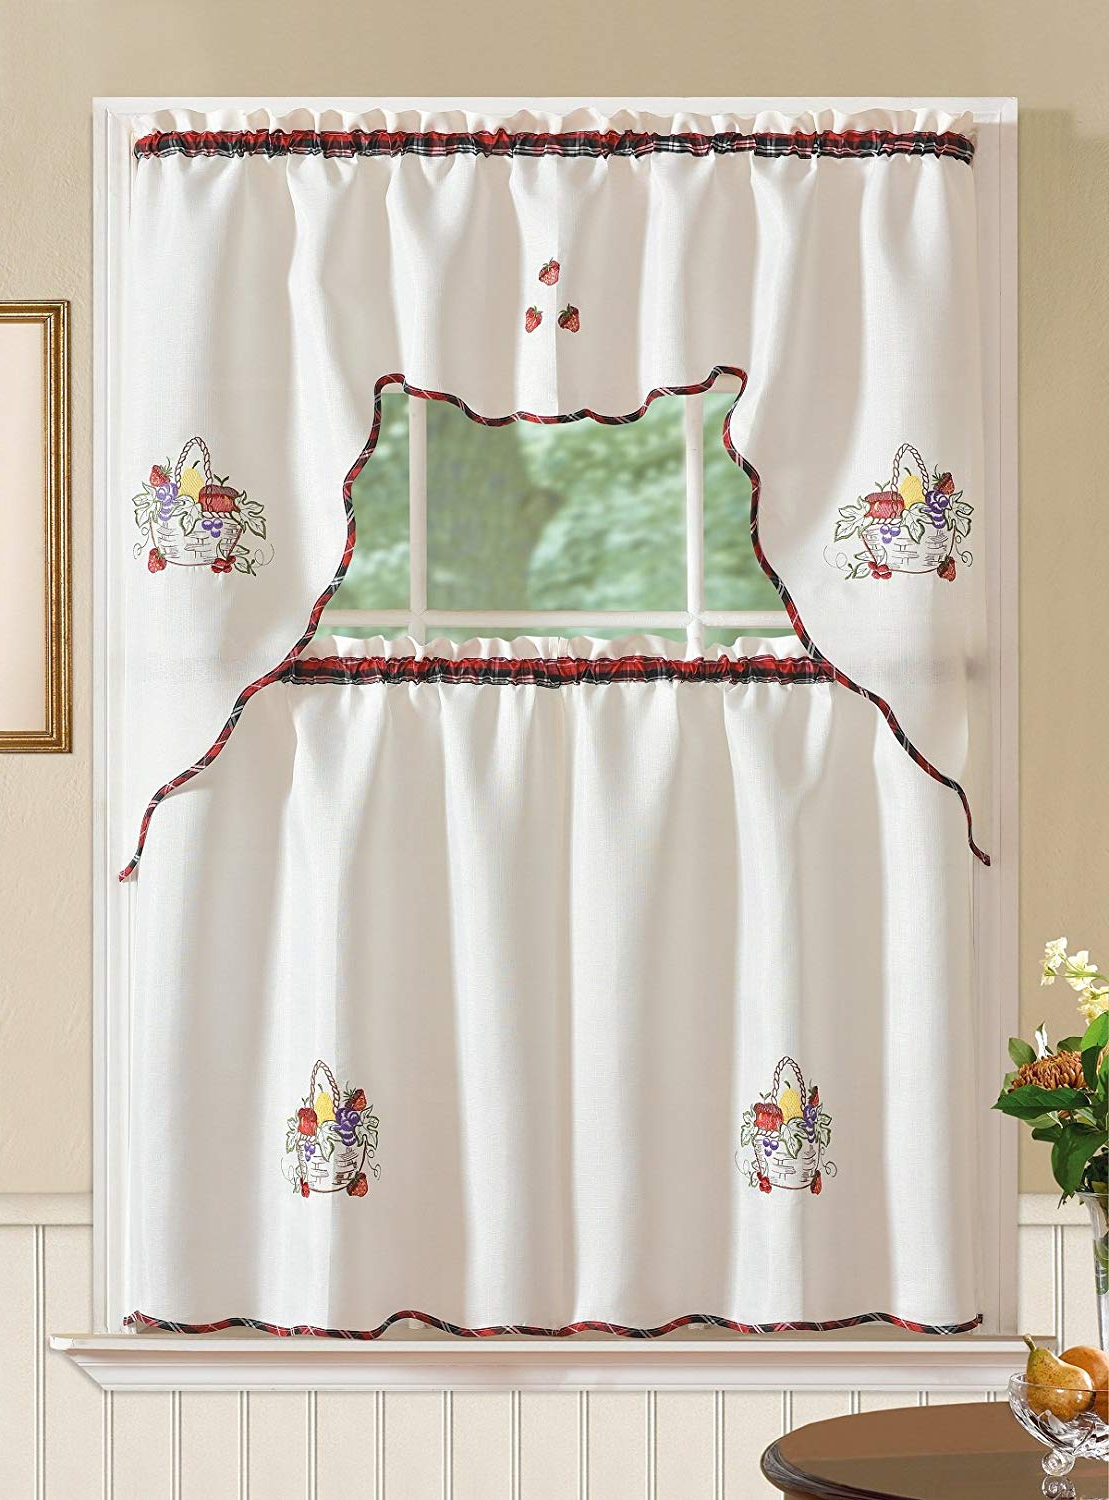 Trendy Rt Designers Collection Imperial Jacquard Kitchen Curtain Set, Coffee With Imperial Flower Jacquard Tier And Valance Kitchen Curtain Sets (View 2 of 20)